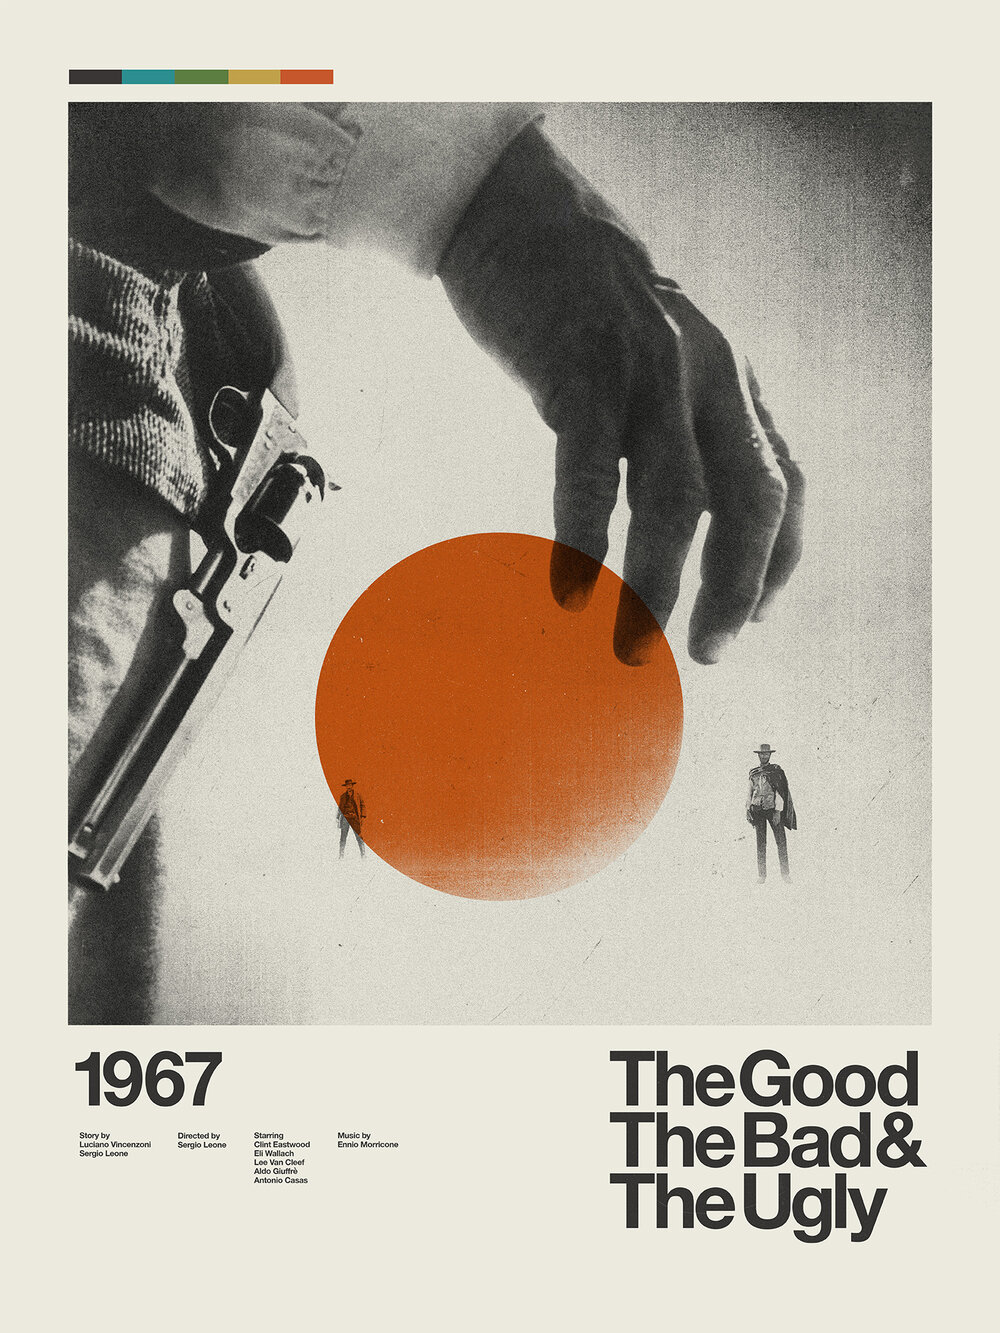 The Good The Bad and The Ugly Retro Modern Movie Poster designed by Patrick Concepcion